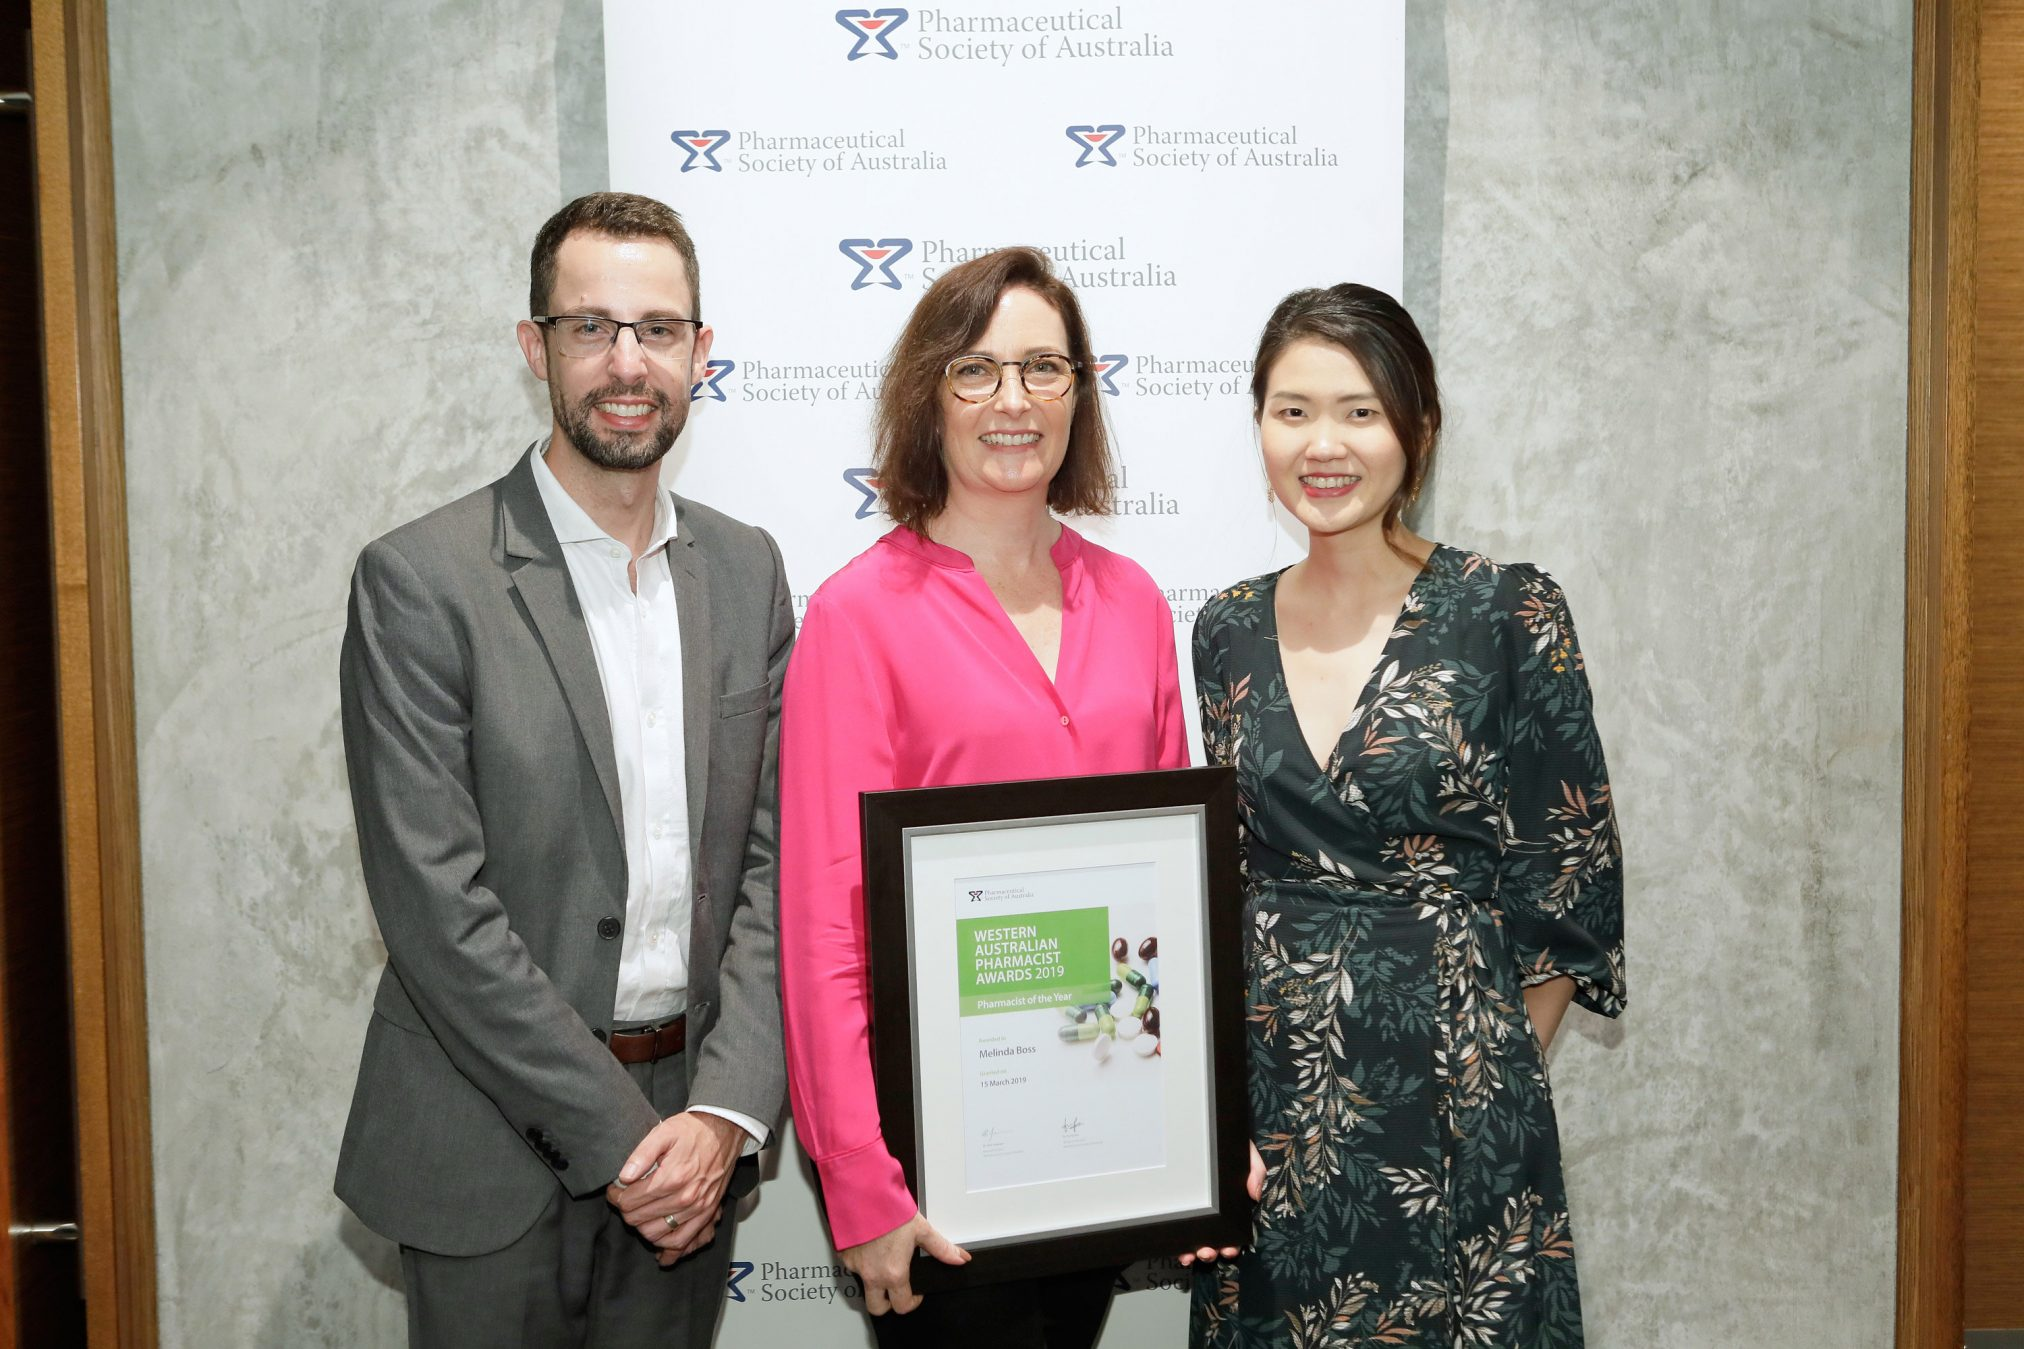 PSA National President Dr Chris Freeman, WA Pharmacist of the Year Melinda Boss and PSA WA President Dr Fei Sim